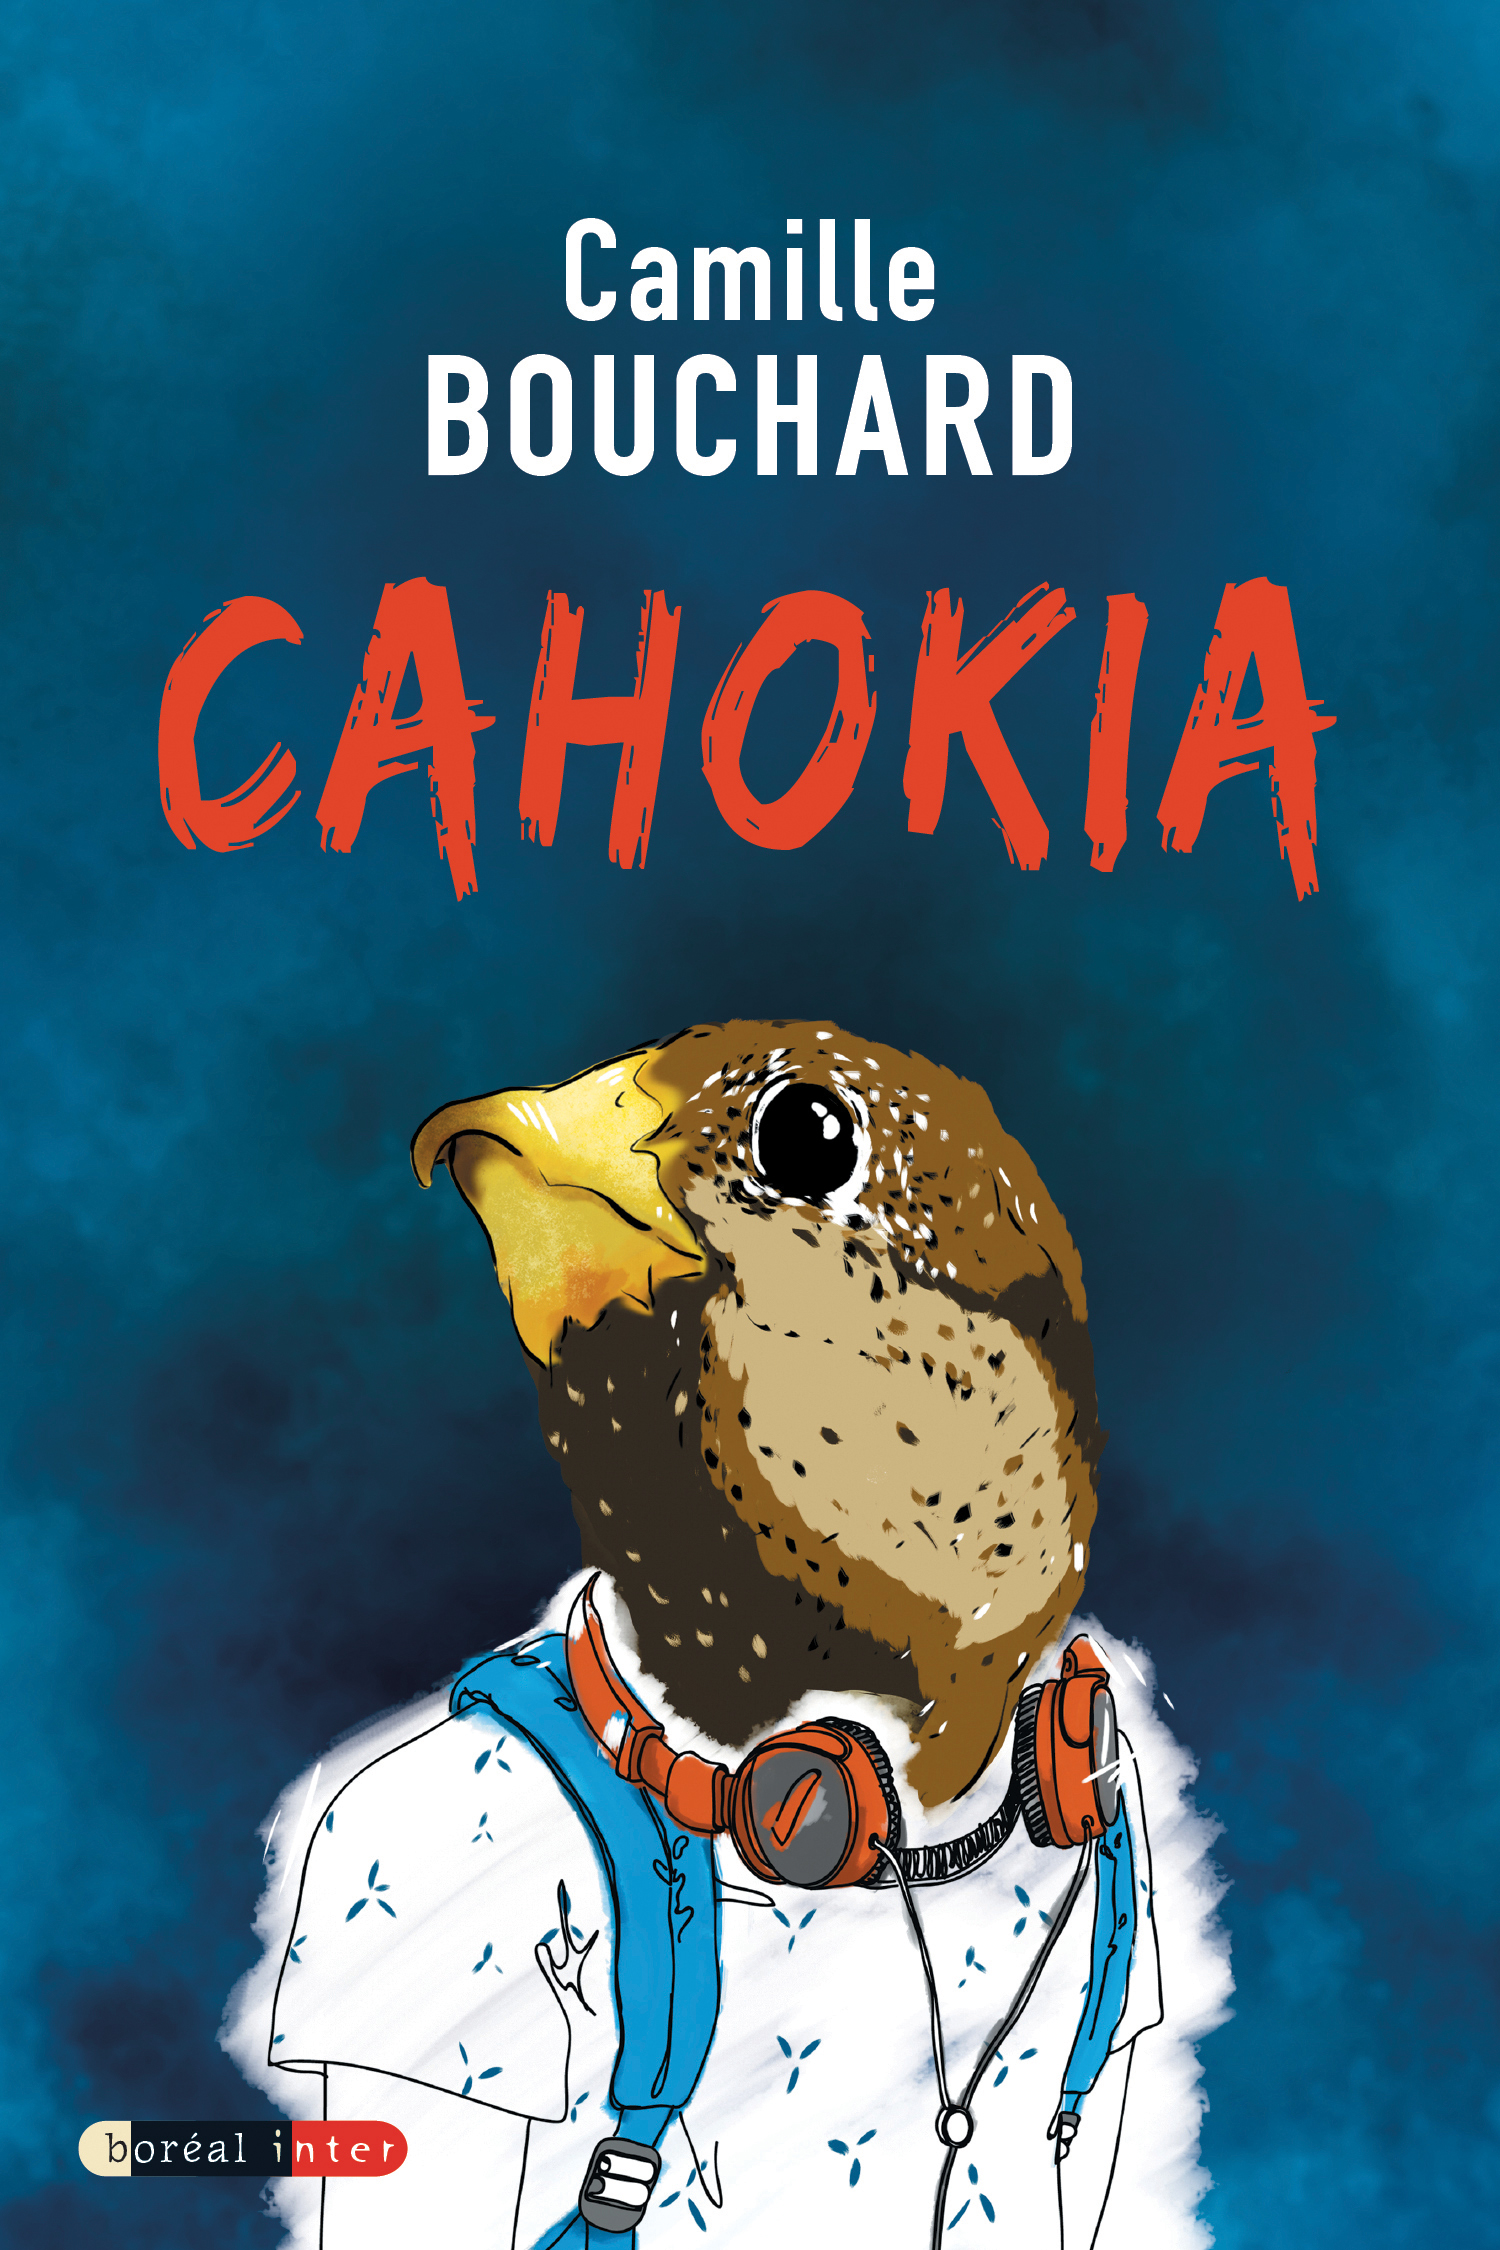 Couverture : Cahokia Camille Bouchard